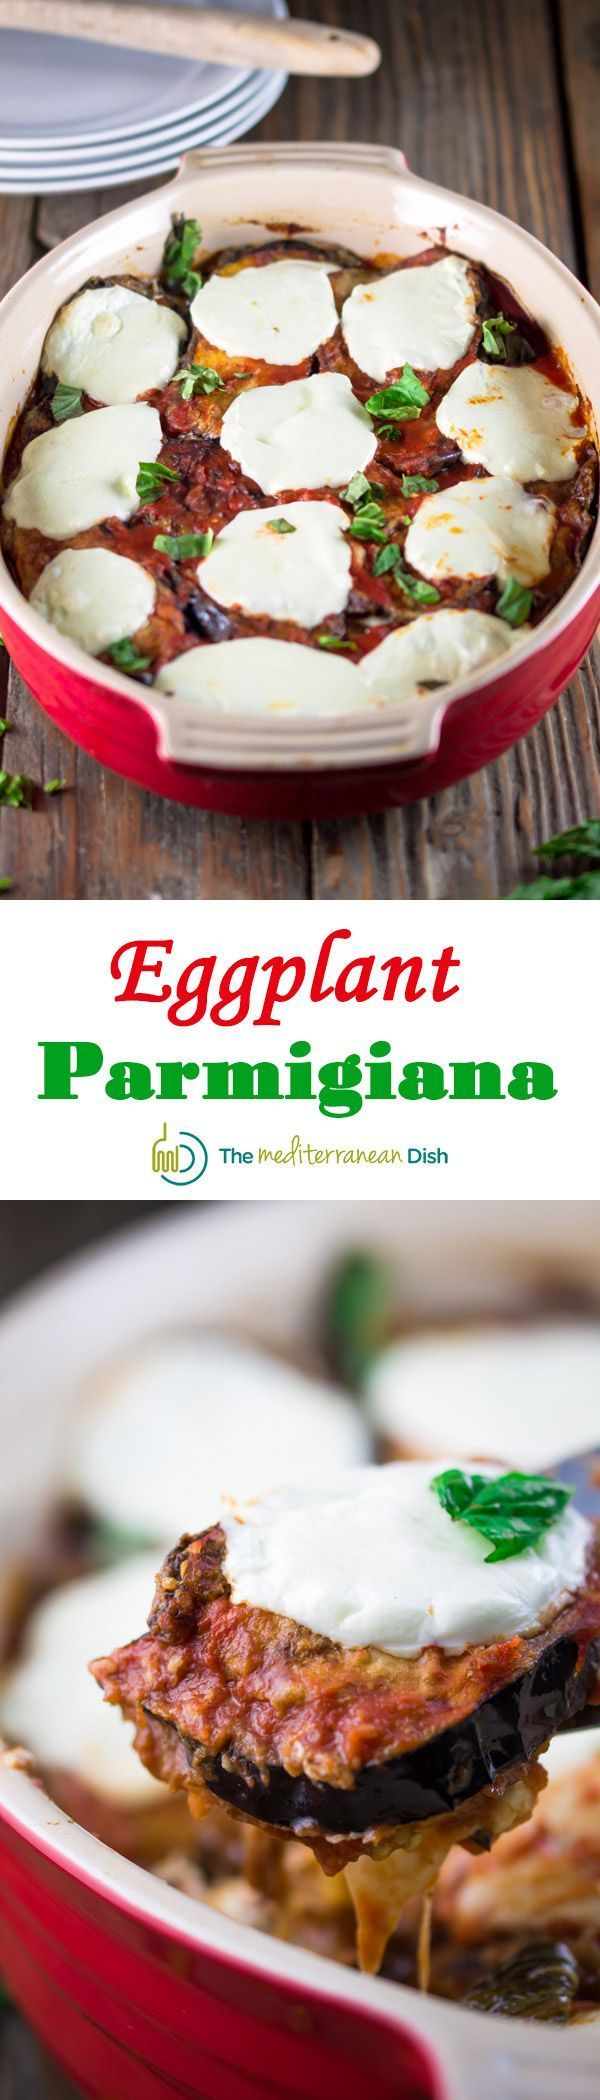 Traditional Italian Eggplant Parmigiana Recipe | Mediterranean Diet. with step-by-step photos from The Mediterranean Dish. Delicious!